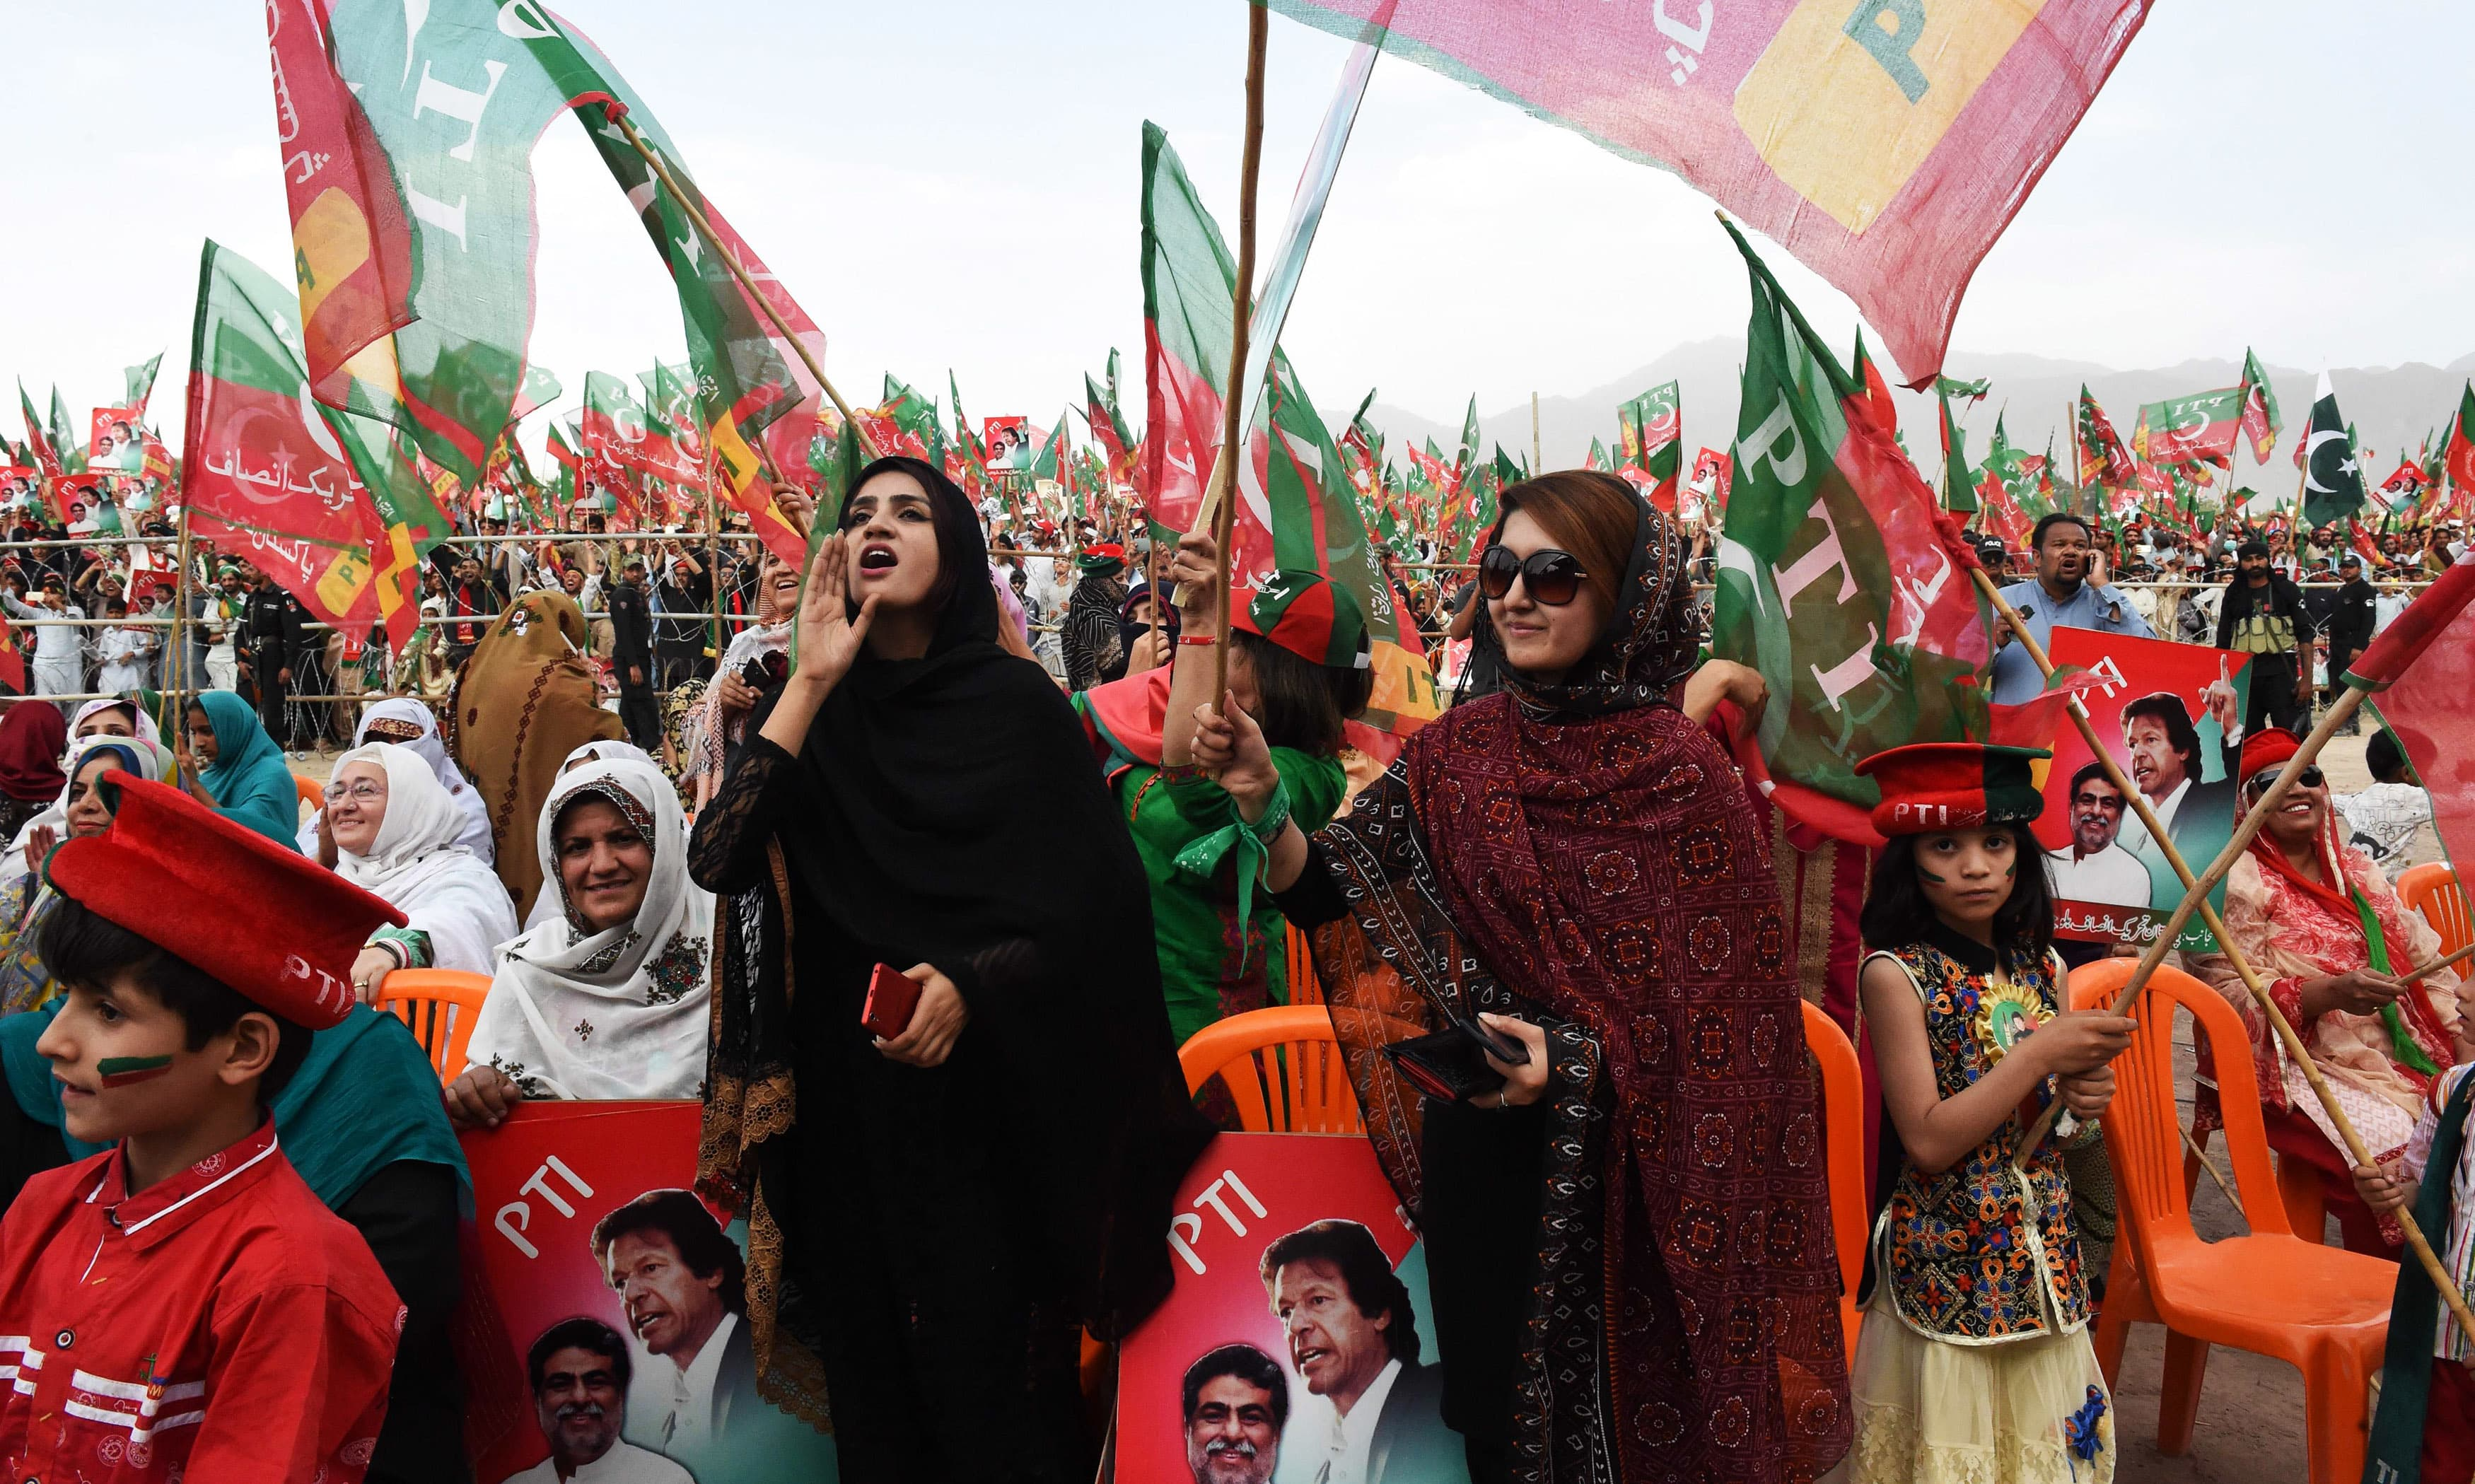 PTI supporters attend an anti-government rally in Quetta. —AFP